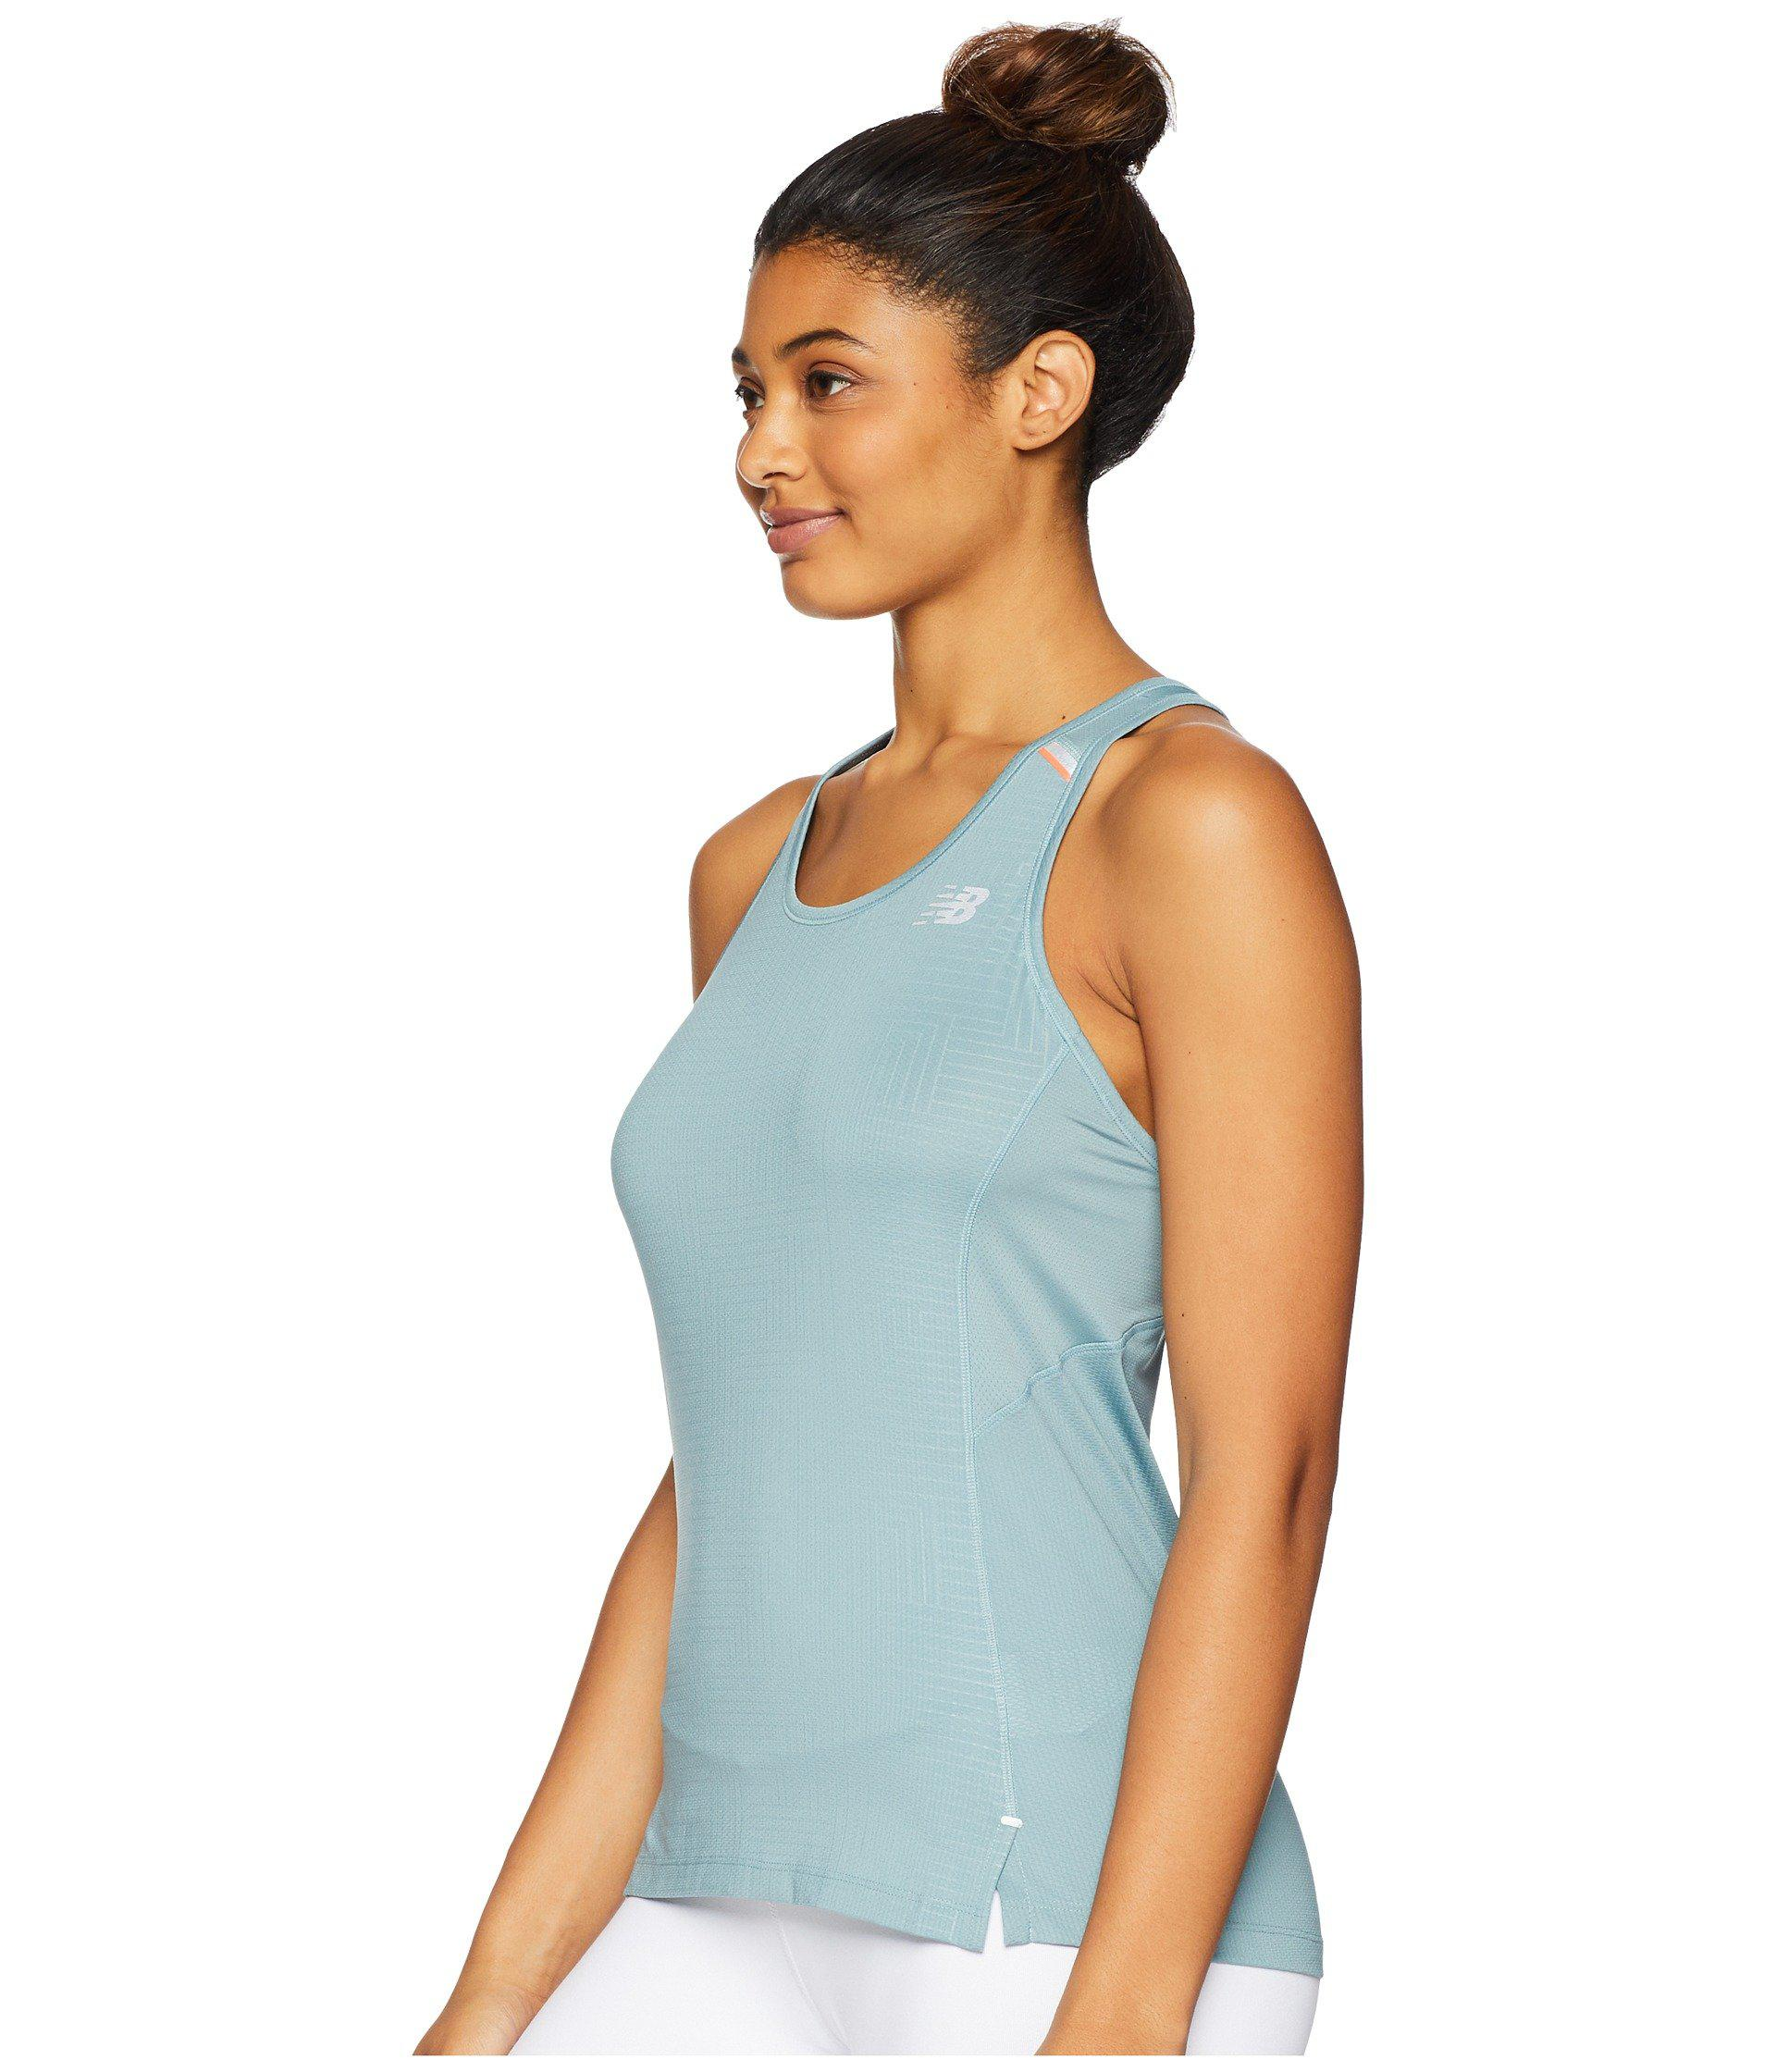 5a7a64dfebe5e Lyst - New Balance Nb Ice 2.0 Print Tank Top in Blue - Save 39%